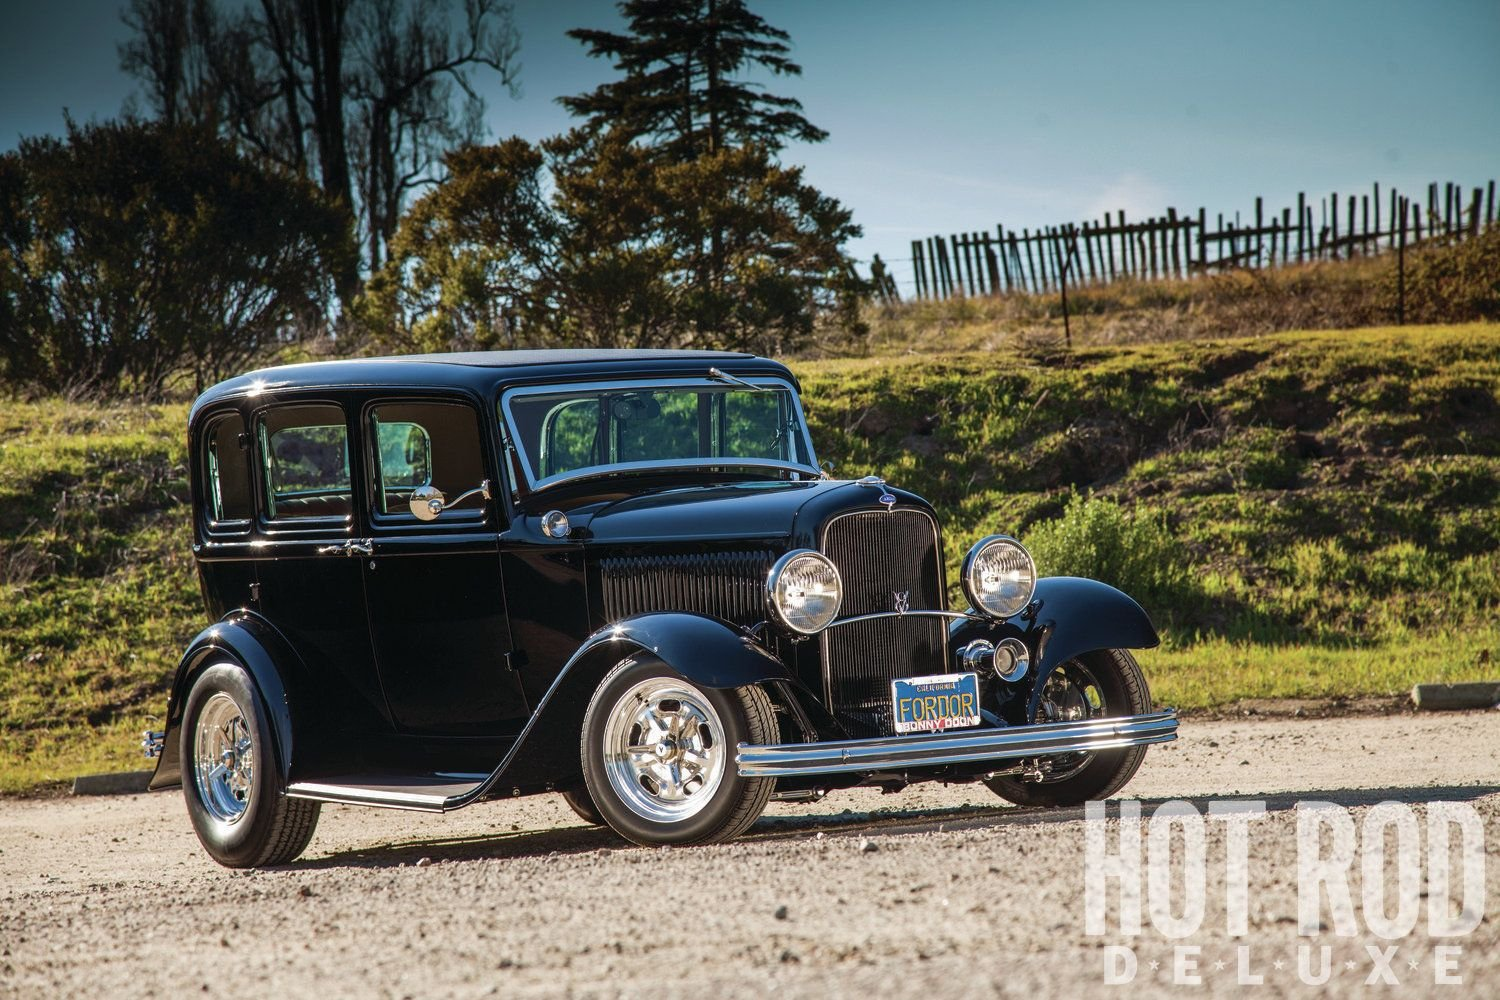 Small Size Car Wallpapers 1932 Ford Tudor Sedan 4 Door Hotrod Hot Rod Streetrod